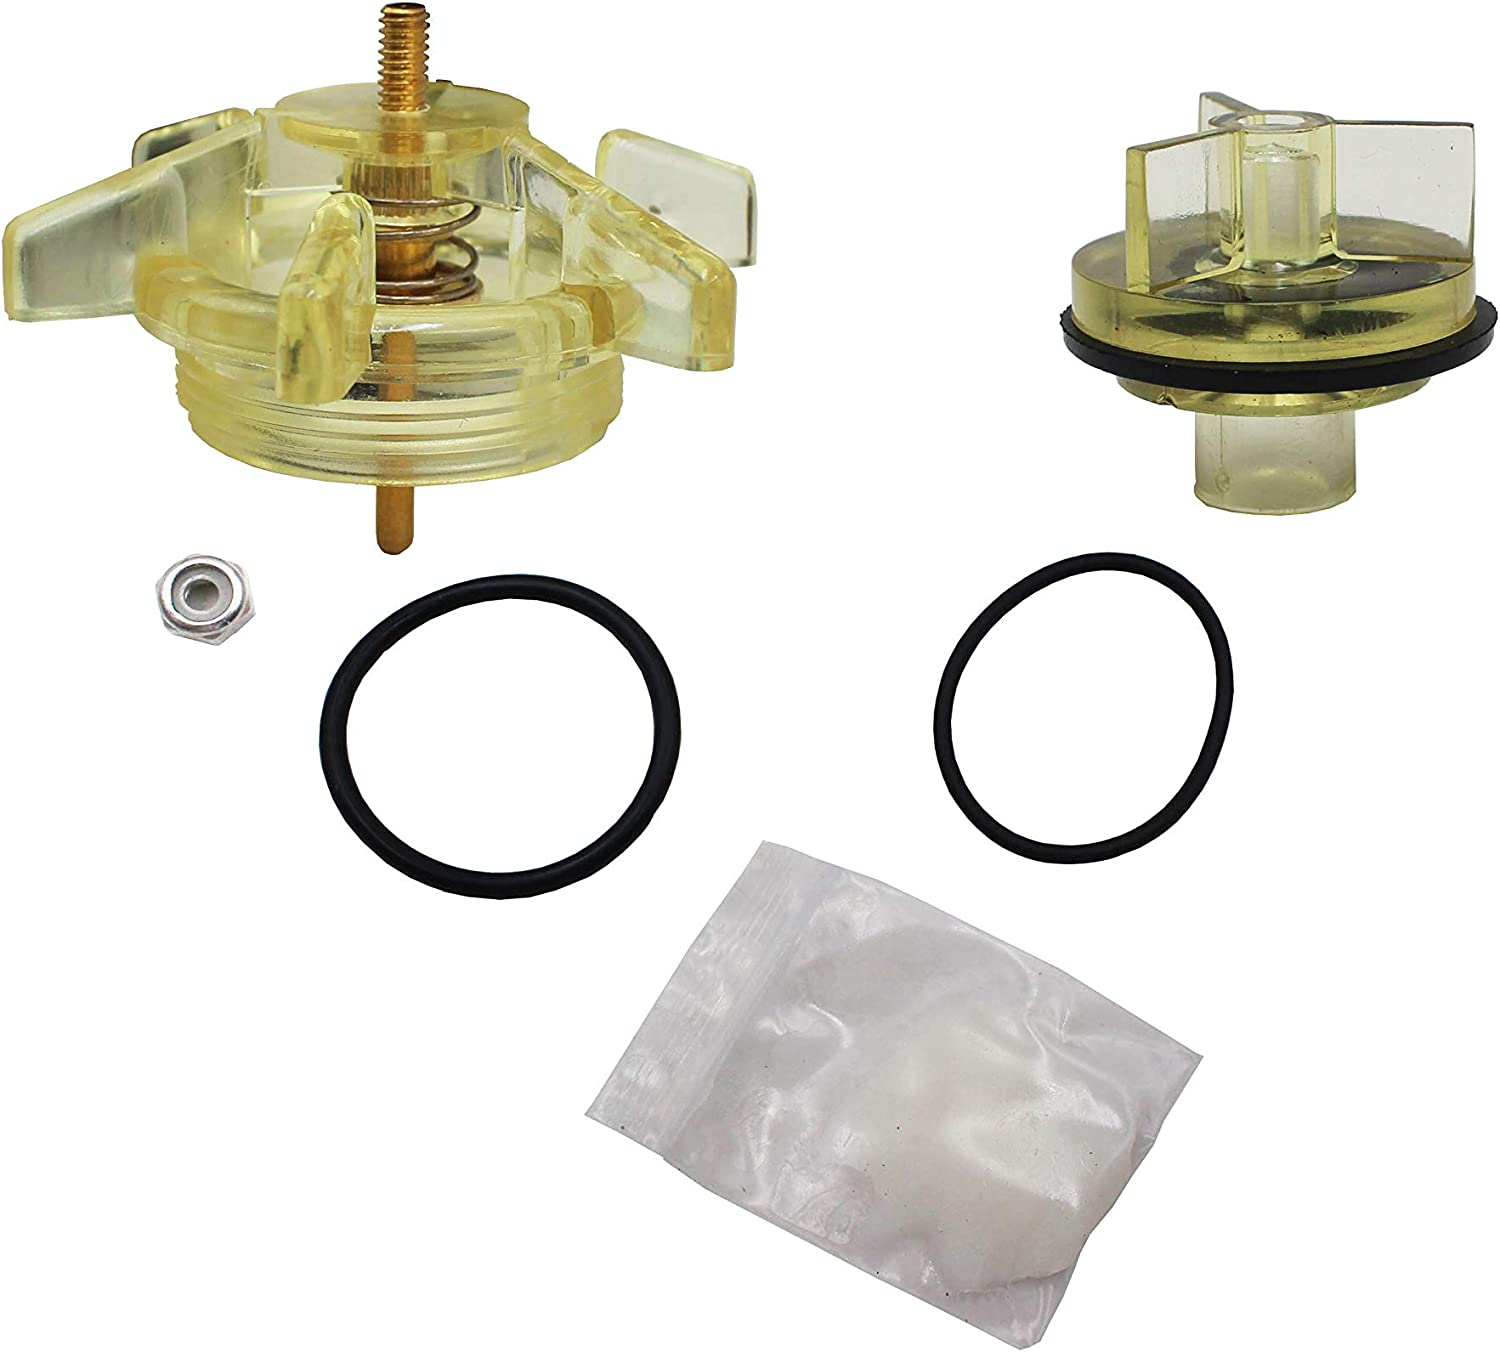 905-211 Bonnet repair kit Replace For Febco Fit For # 765 1//2 /& 3//4 Vacuum Breakers /& Backflow